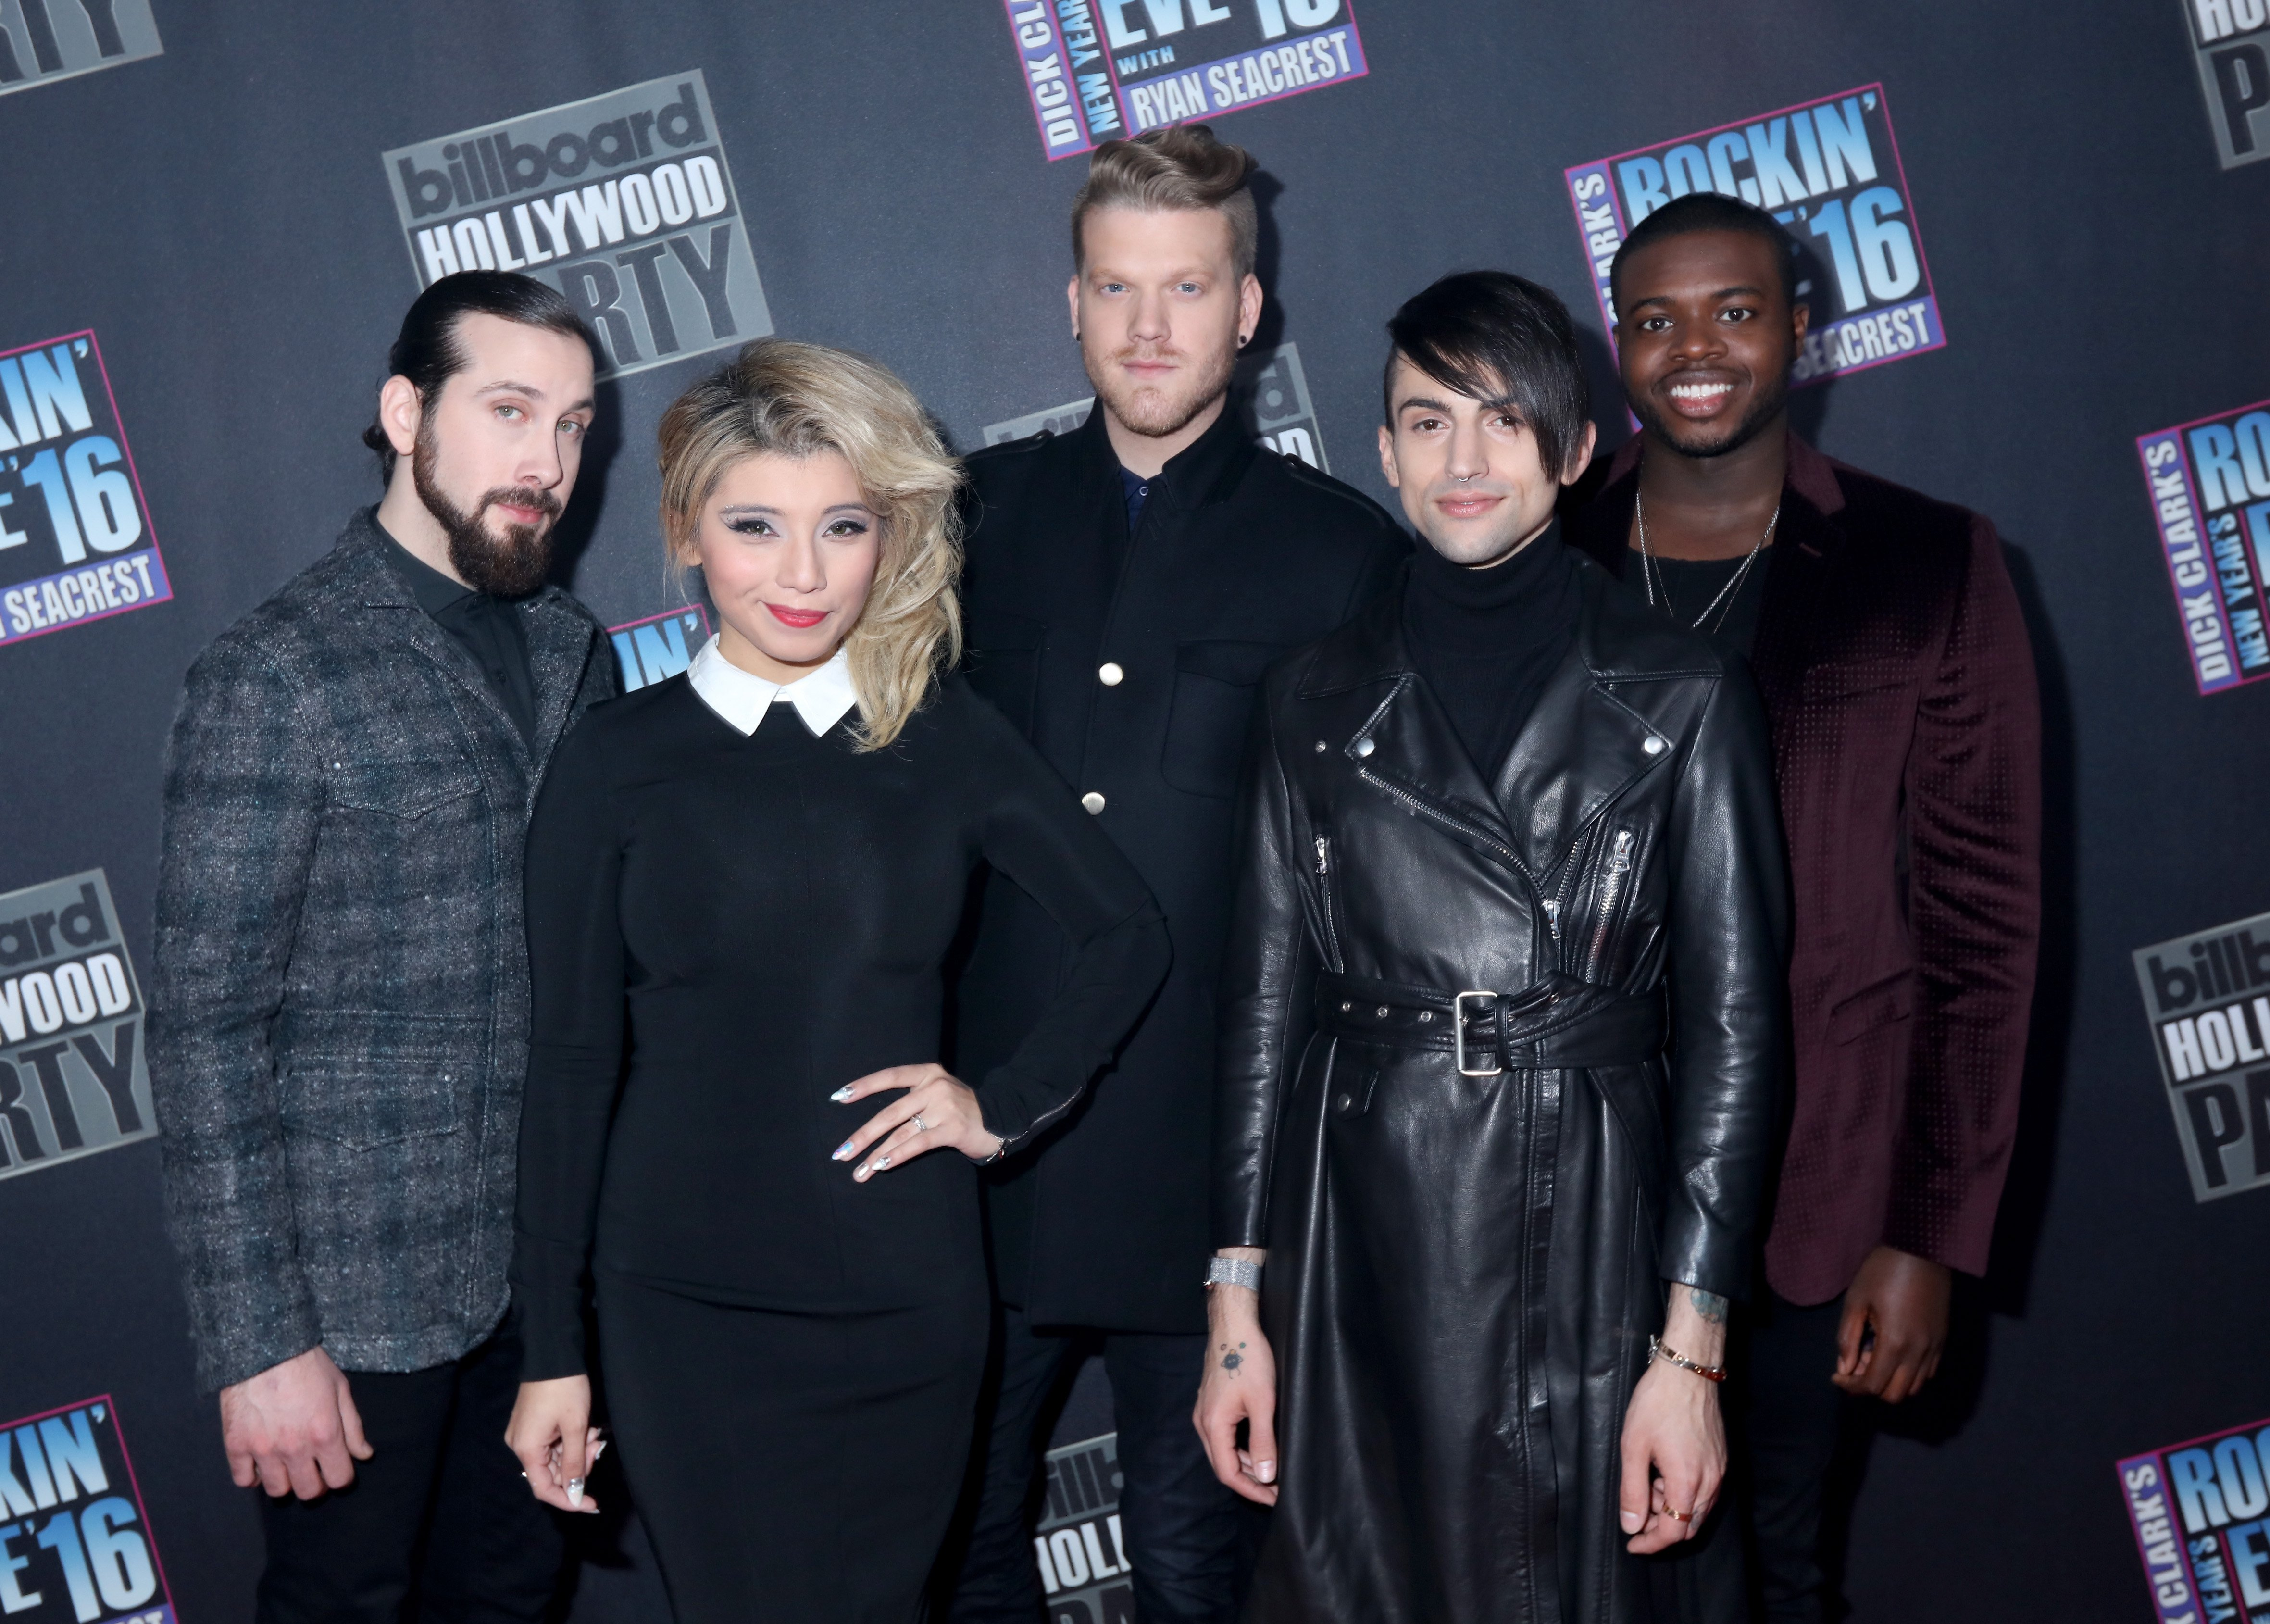 Avi Kaplan, Kirstin Maldonado, Scott Hoying, Mitch Grassi and Kevin Olusola of Pentatonix attends Dick Clark's New Year's Rockin' Eve with Ryan Seacrest 2016 on December 31, 2015 in Los Angeles